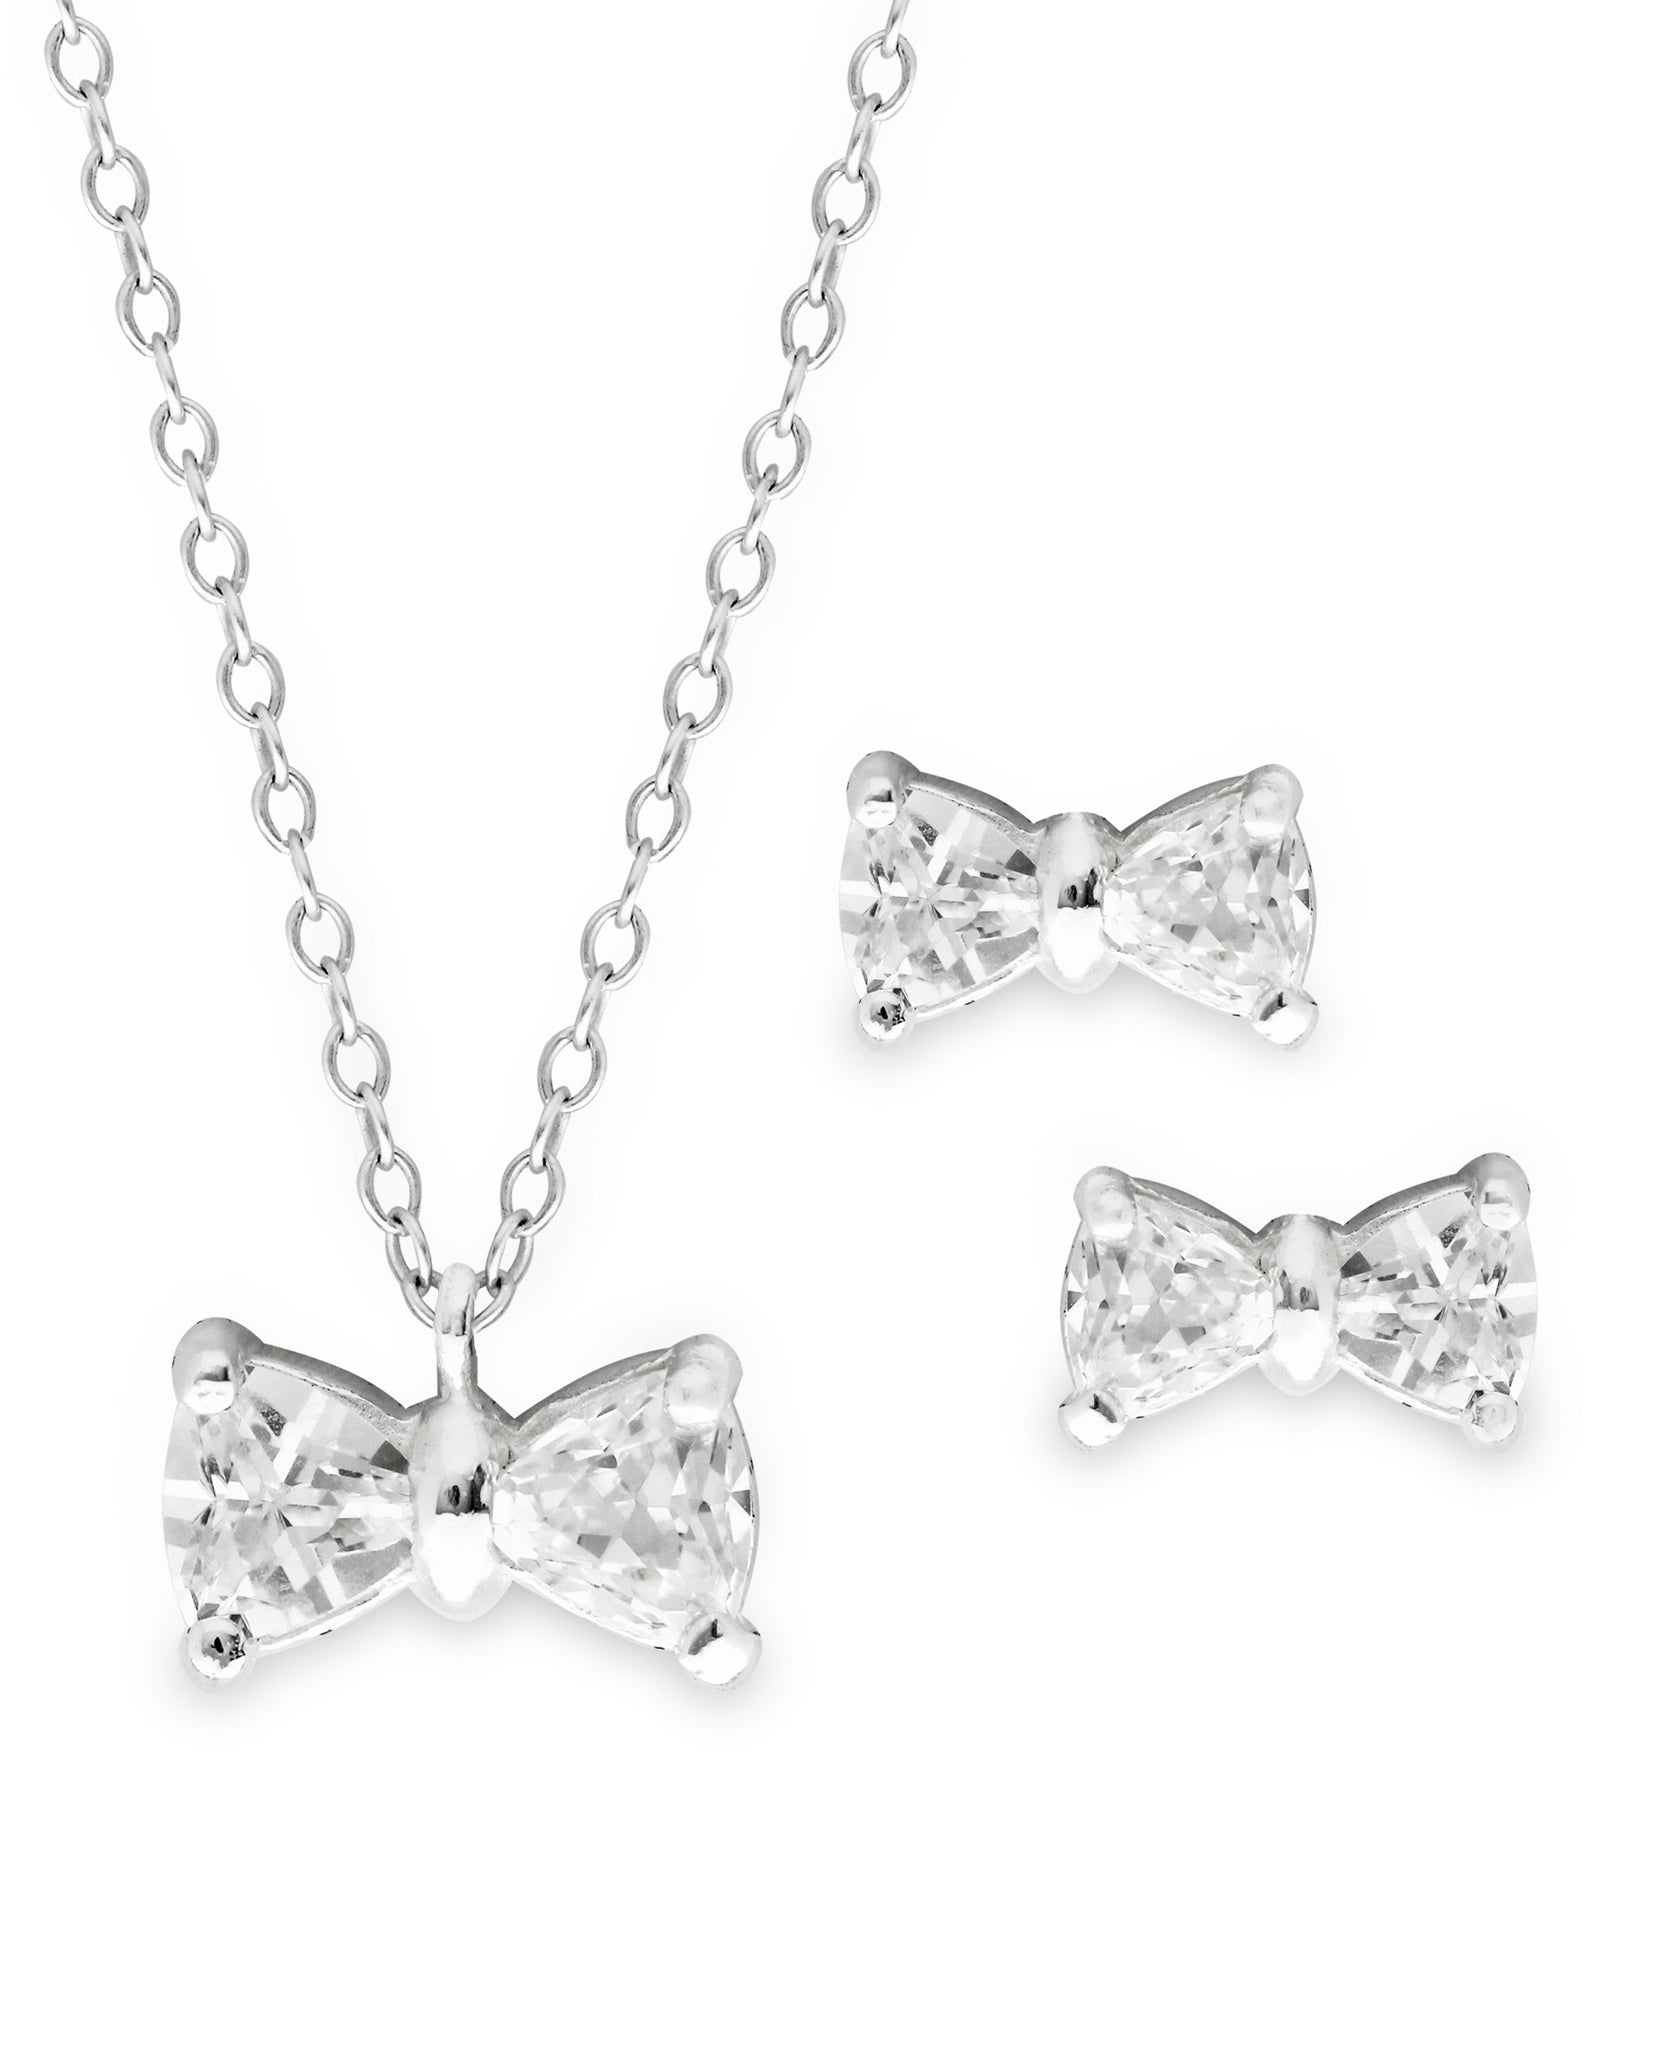 Children's Sterling Silver Cubic Zirconia Bowtie Pendant Necklace & Stud Earrings Set - Rhona Sutton Jewellery